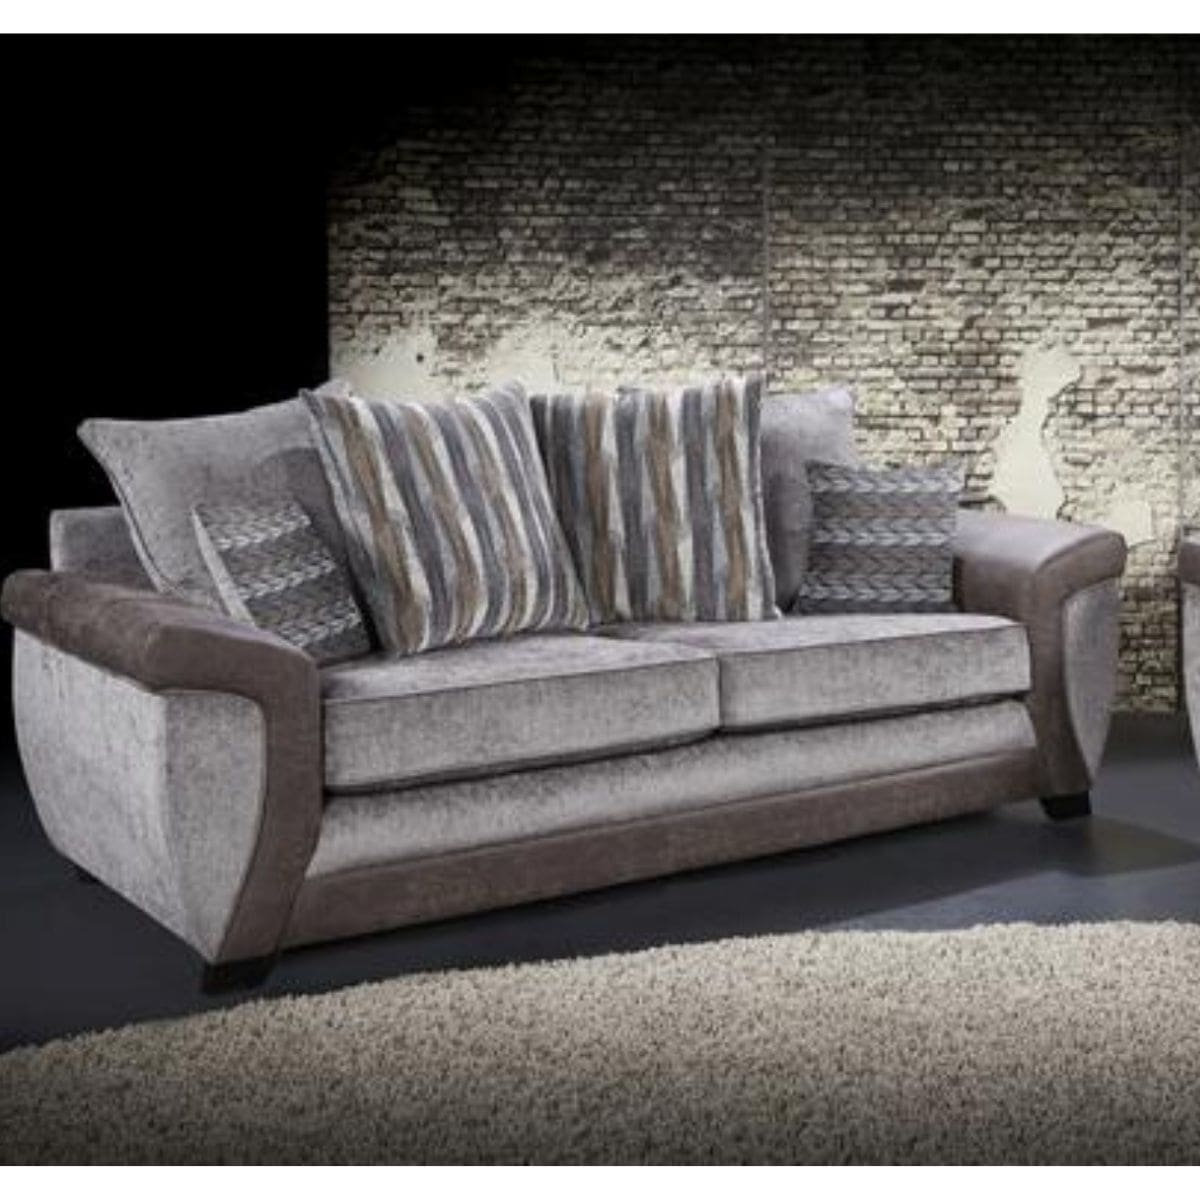 fabric and faux leather 2 seater sofa